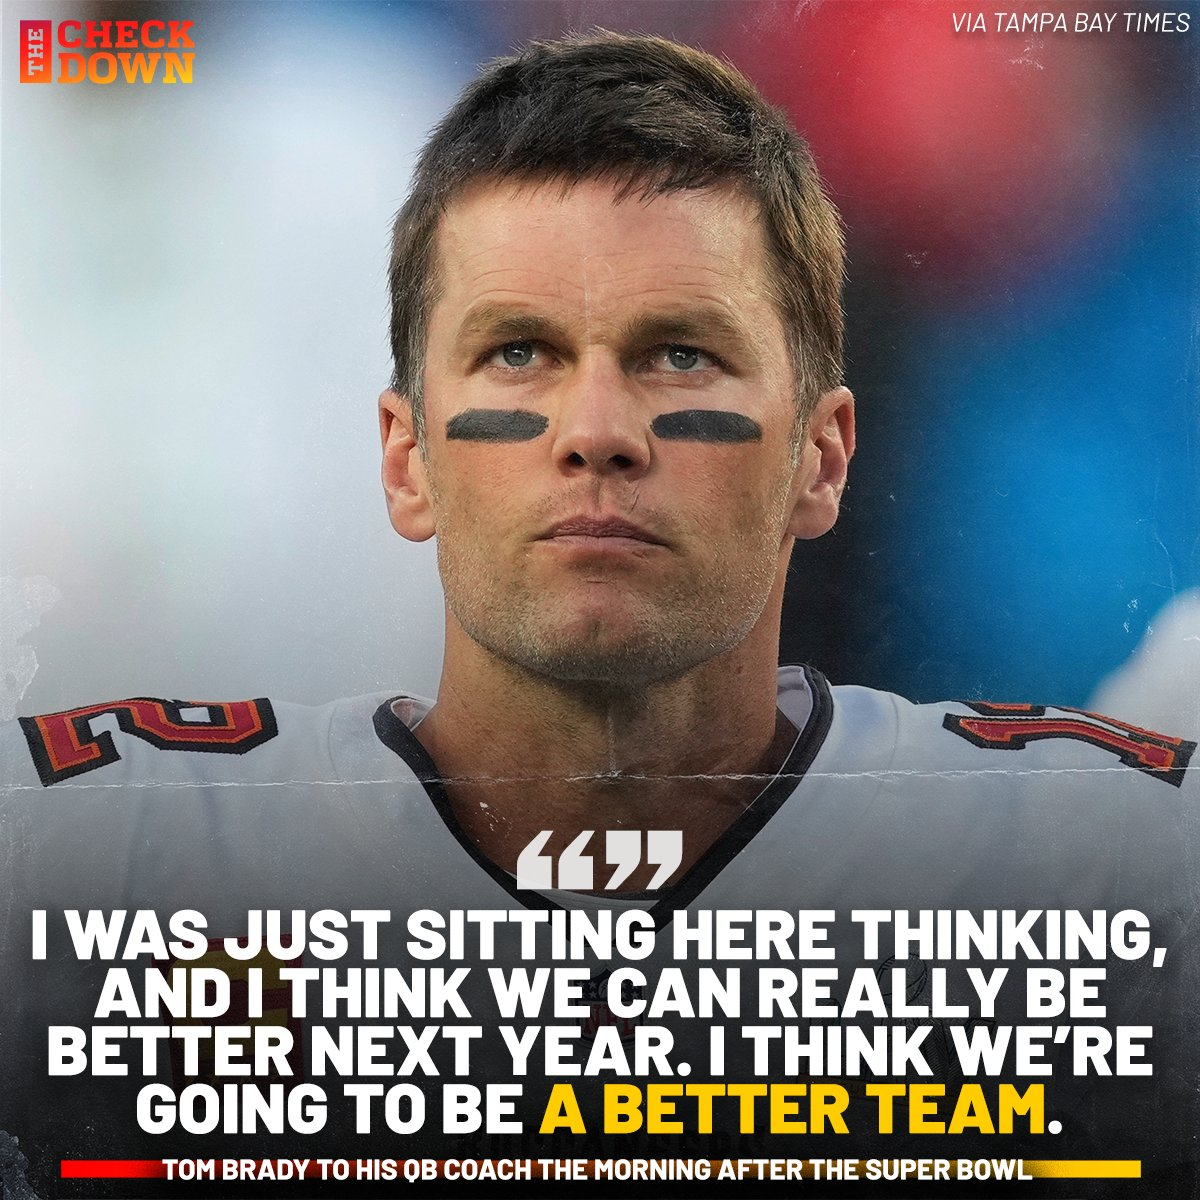 At 8 am the morning after winning the Super Bowl, Brady's mind was already on ring no. 8 🐐 @TomBrady @Buccaneers